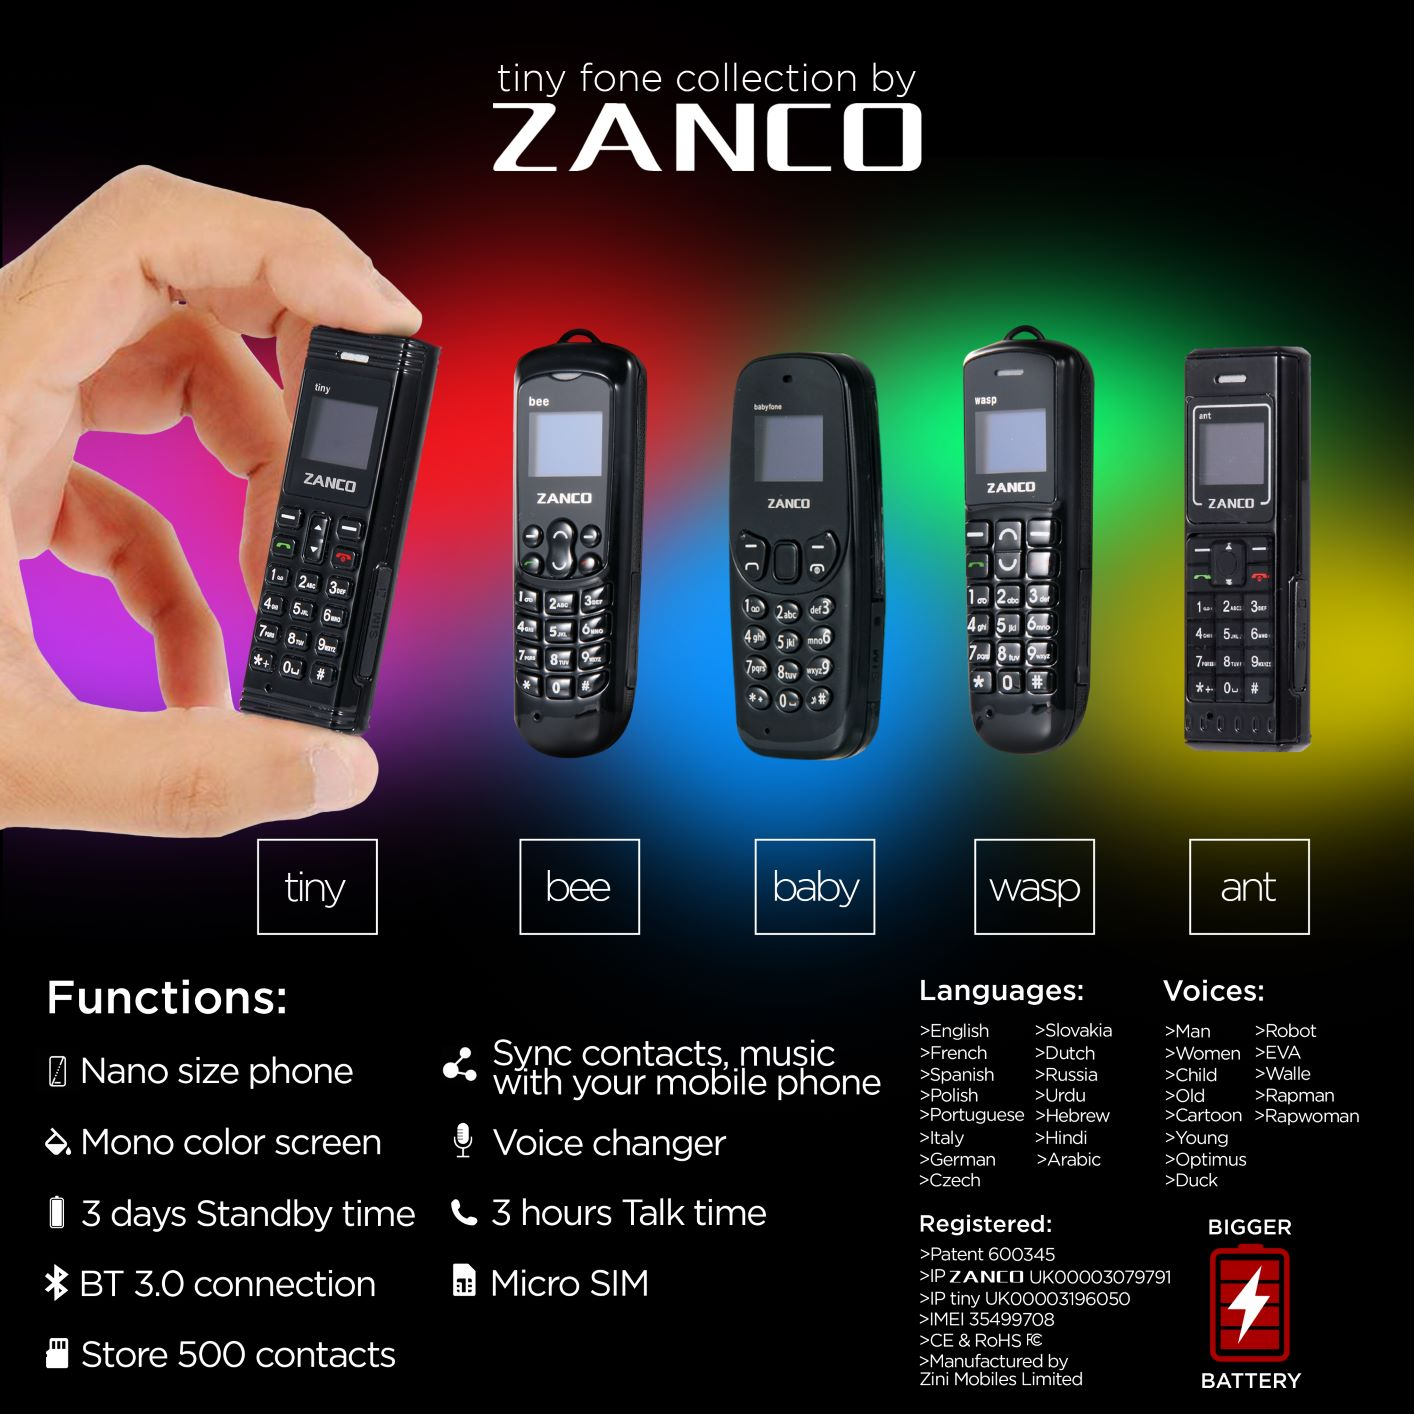 ZANCO x 5 tiny fone collection mixed zanco mini phones cellular phone unlocked cell phone Buy direct from manufacturers